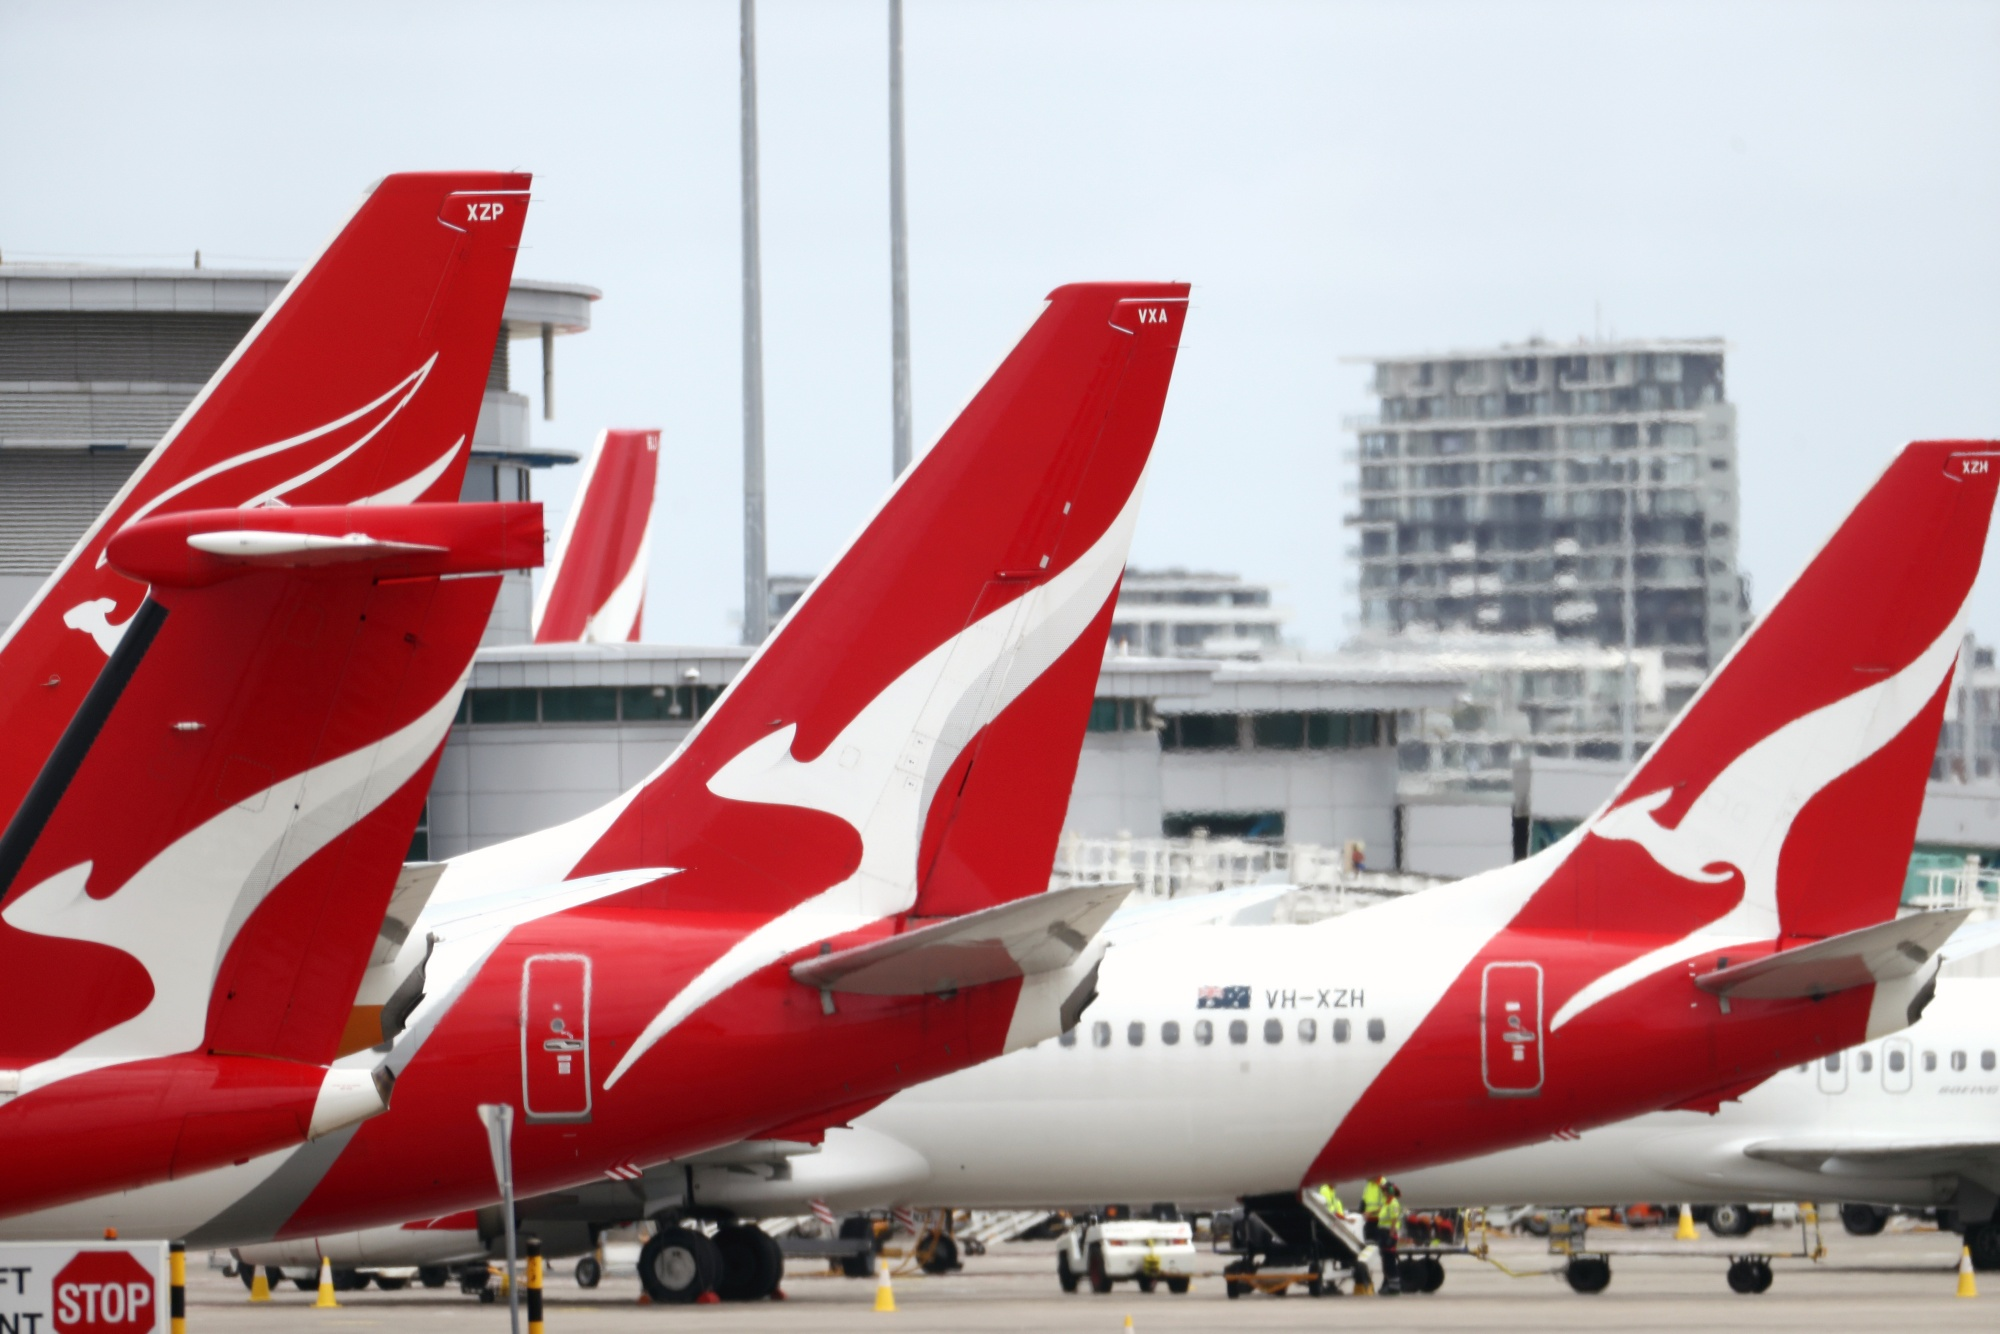 Operations at Sydney Airport Ahead of Qantas and the Airport's Earnings